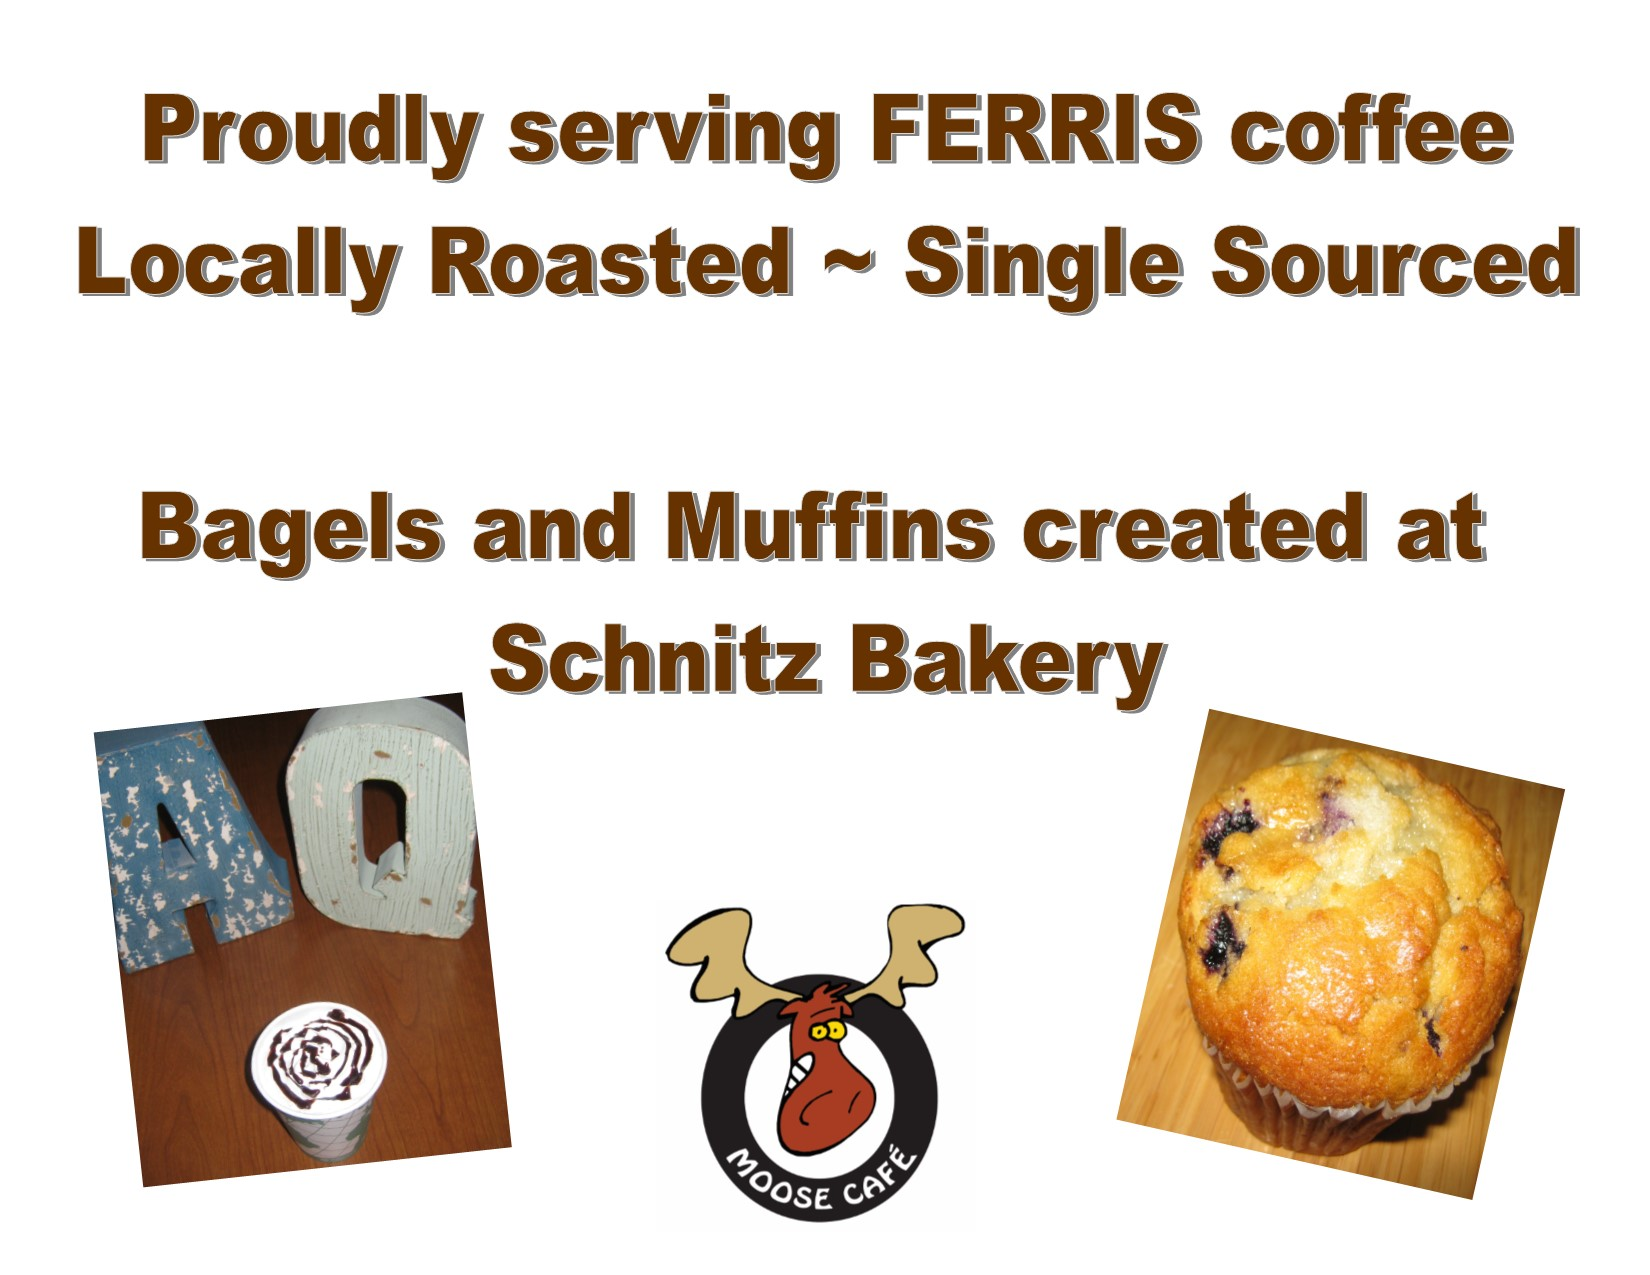 Proudlyu serving FERRIS coffee locally roaster - single sourced. Bagels and muffins created at Schnitz Bakery